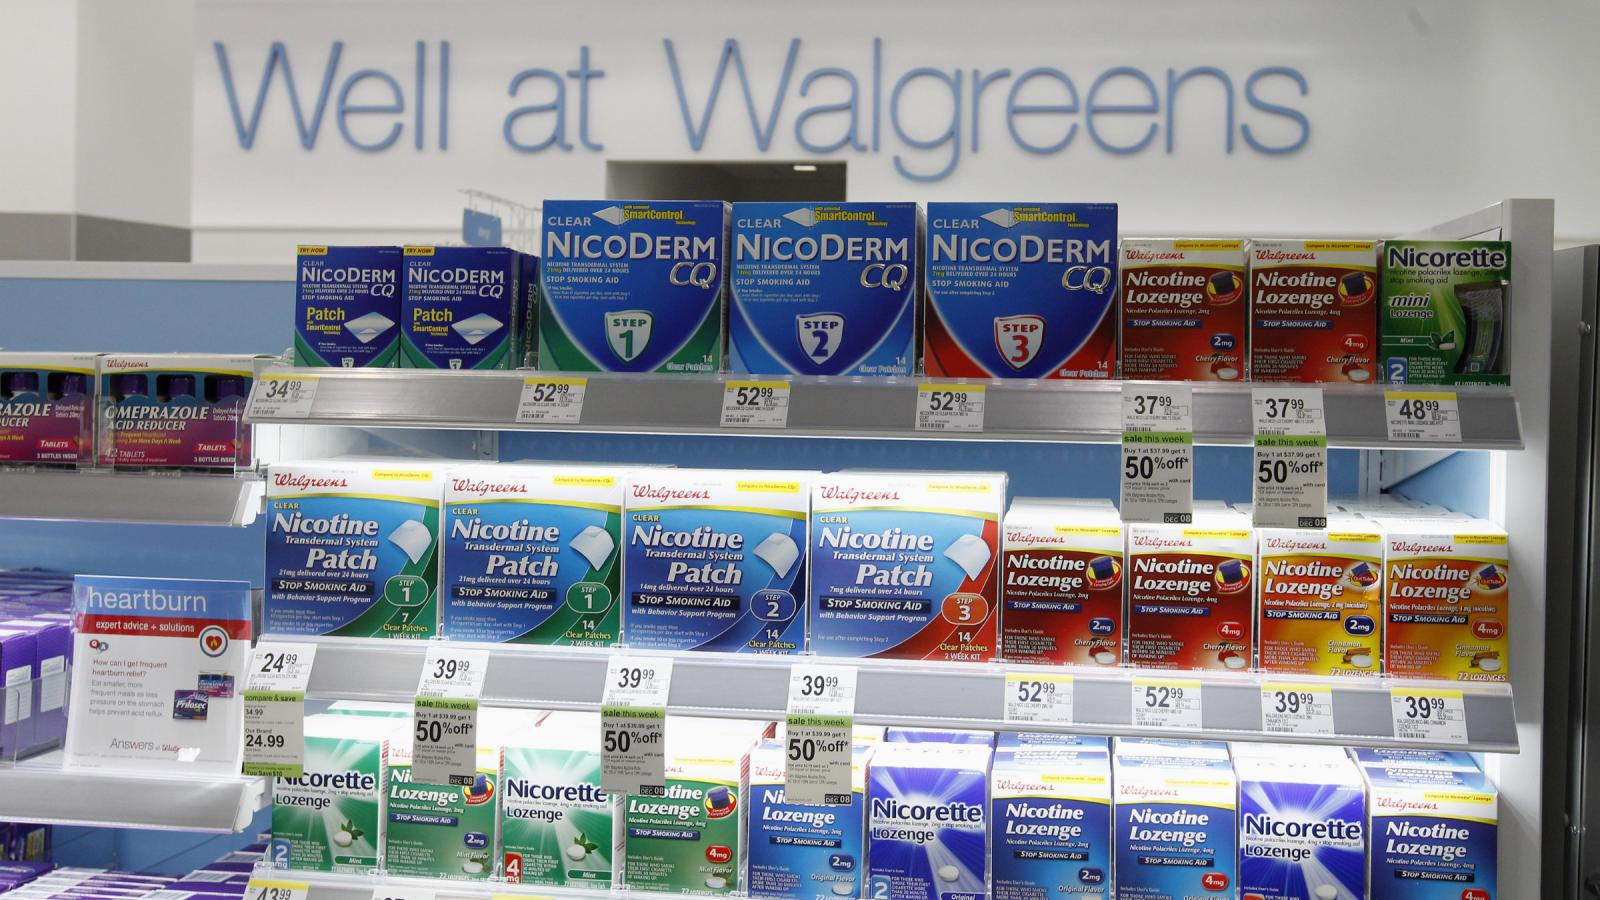 Walgreens wants to help you quit smoking—just not enough to